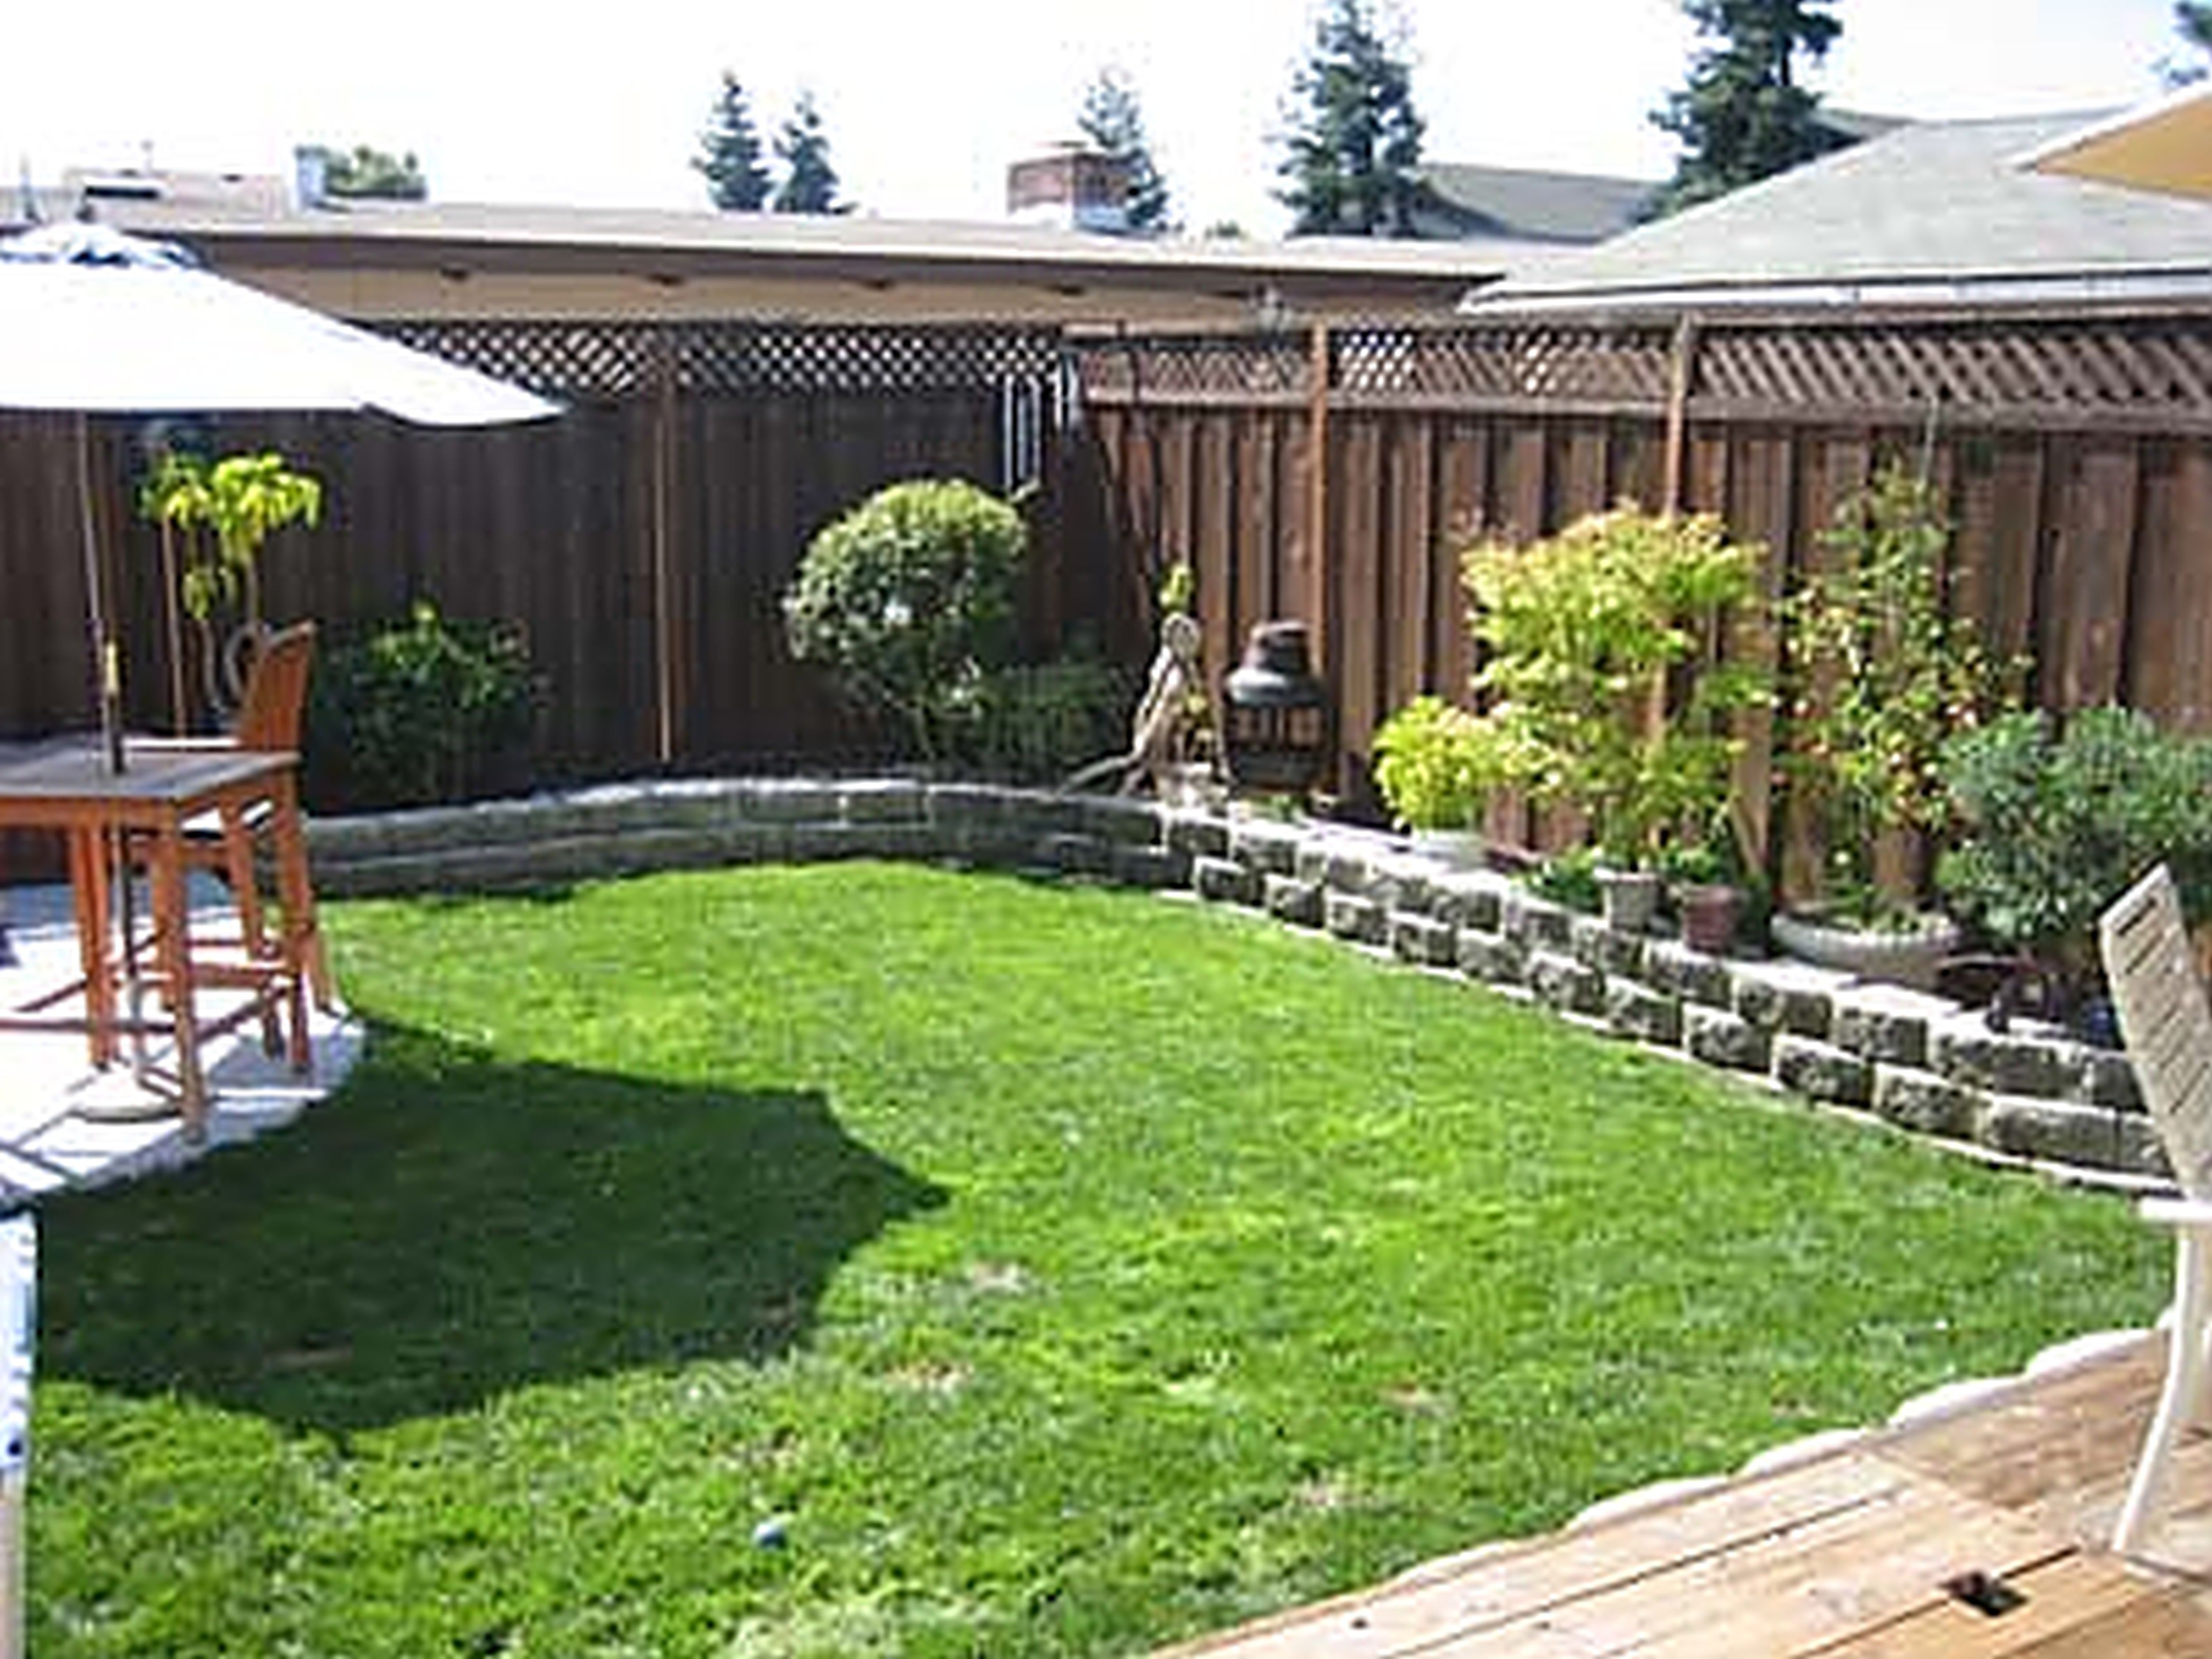 10 Attractive Landscaping Ideas For Small Yards yard landscaping ideas on a budget small backyard landscape cheap 2020